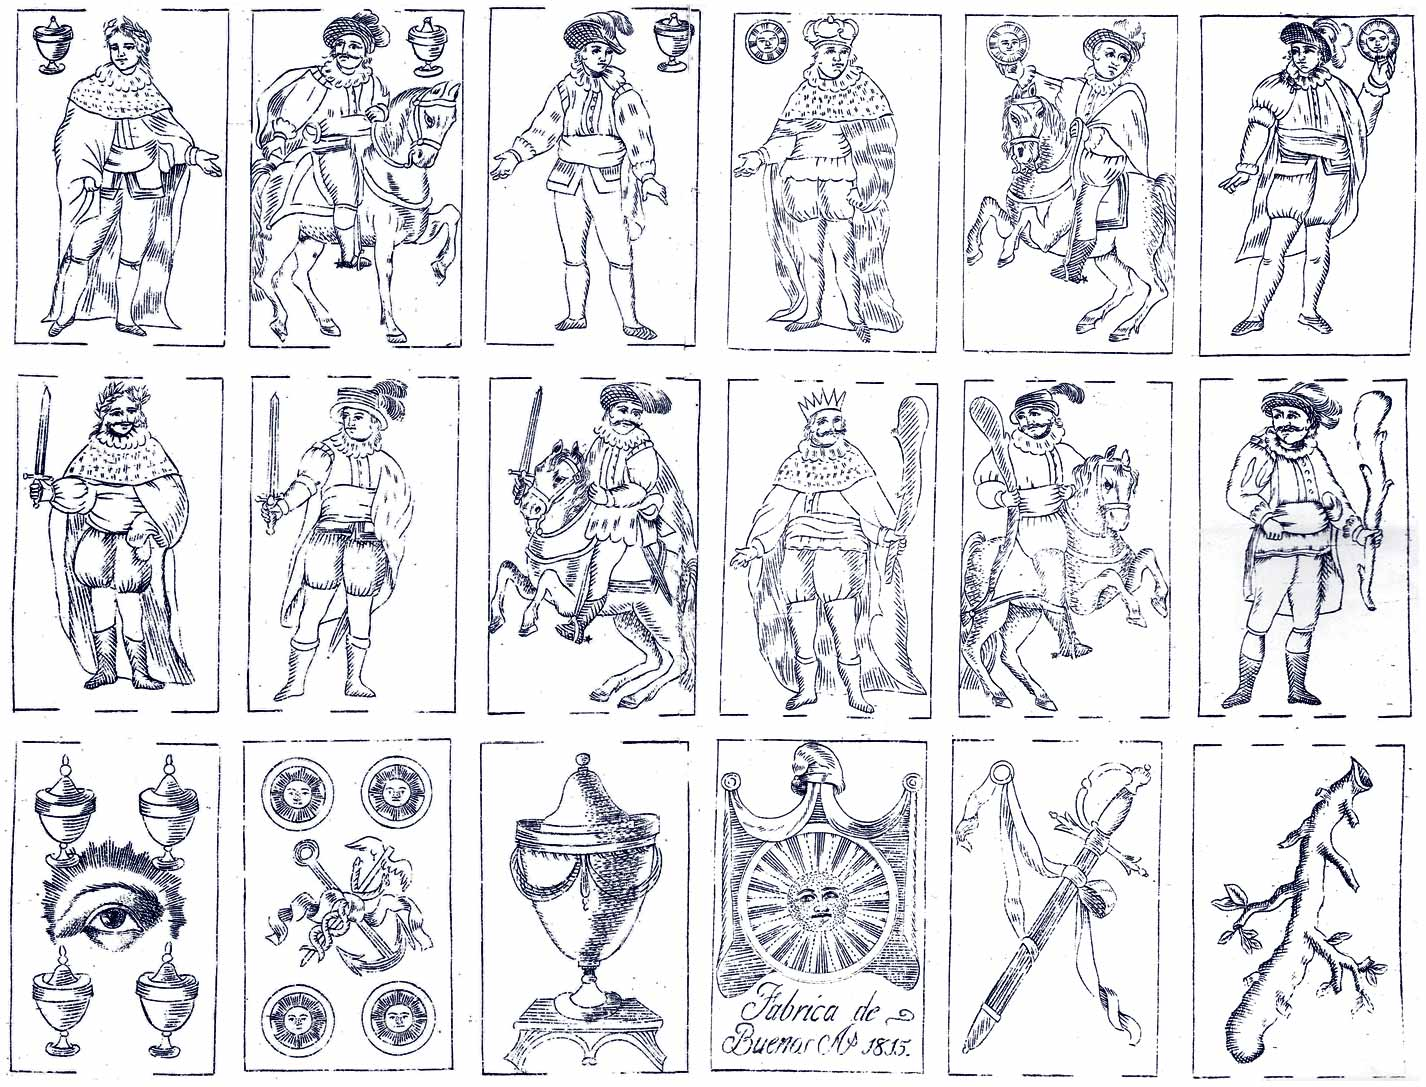 18 engraved playing cards by José Maria Quercia y Possi, Buenos Aires, 1815